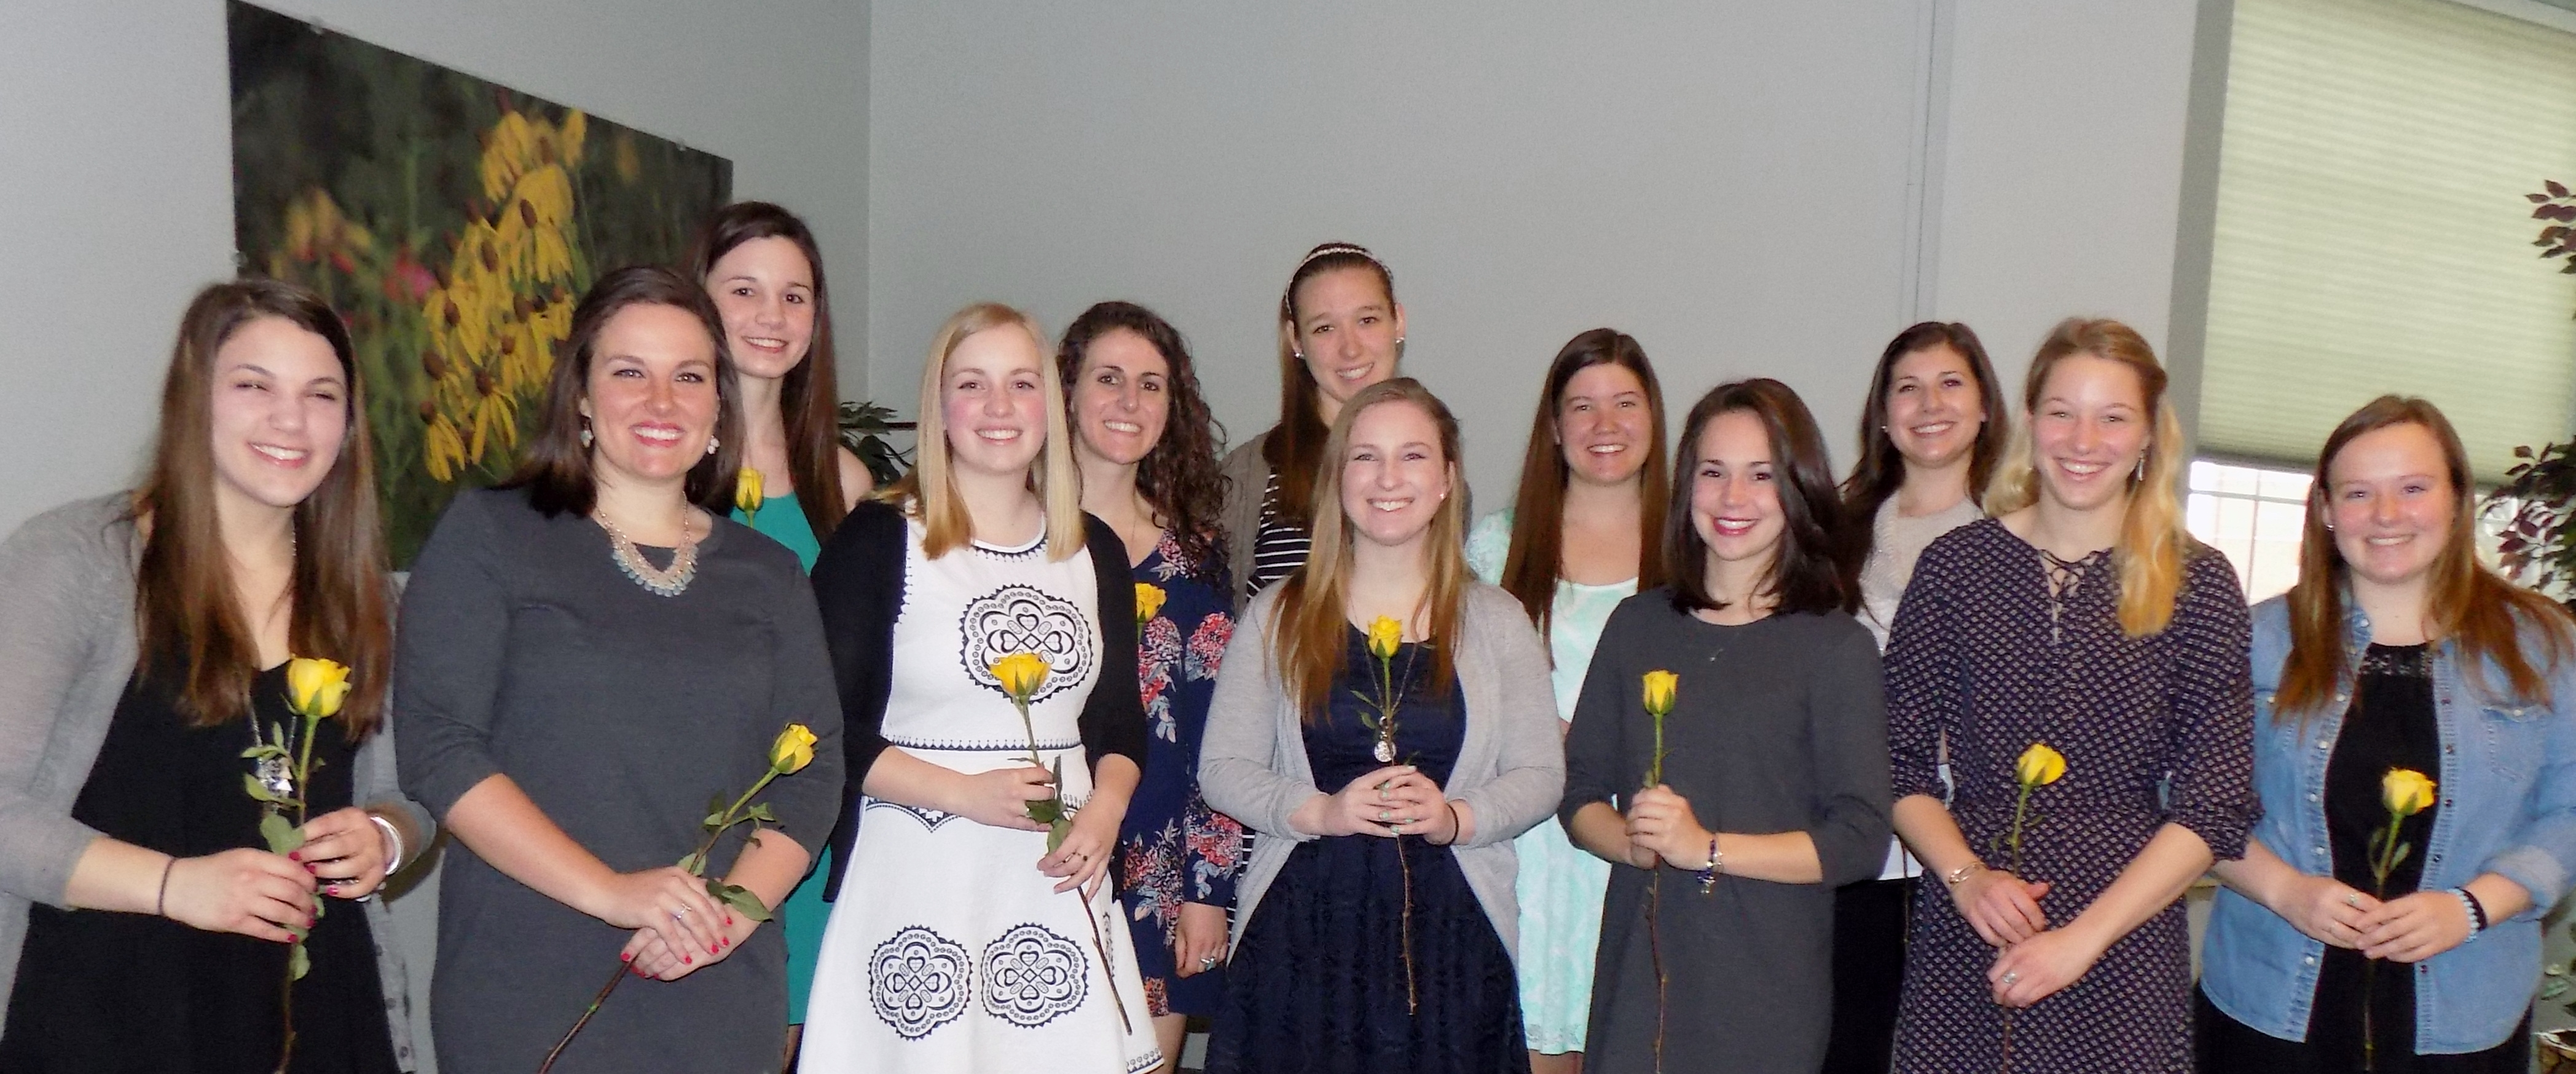 PTE Induction 2016 inductees cropped